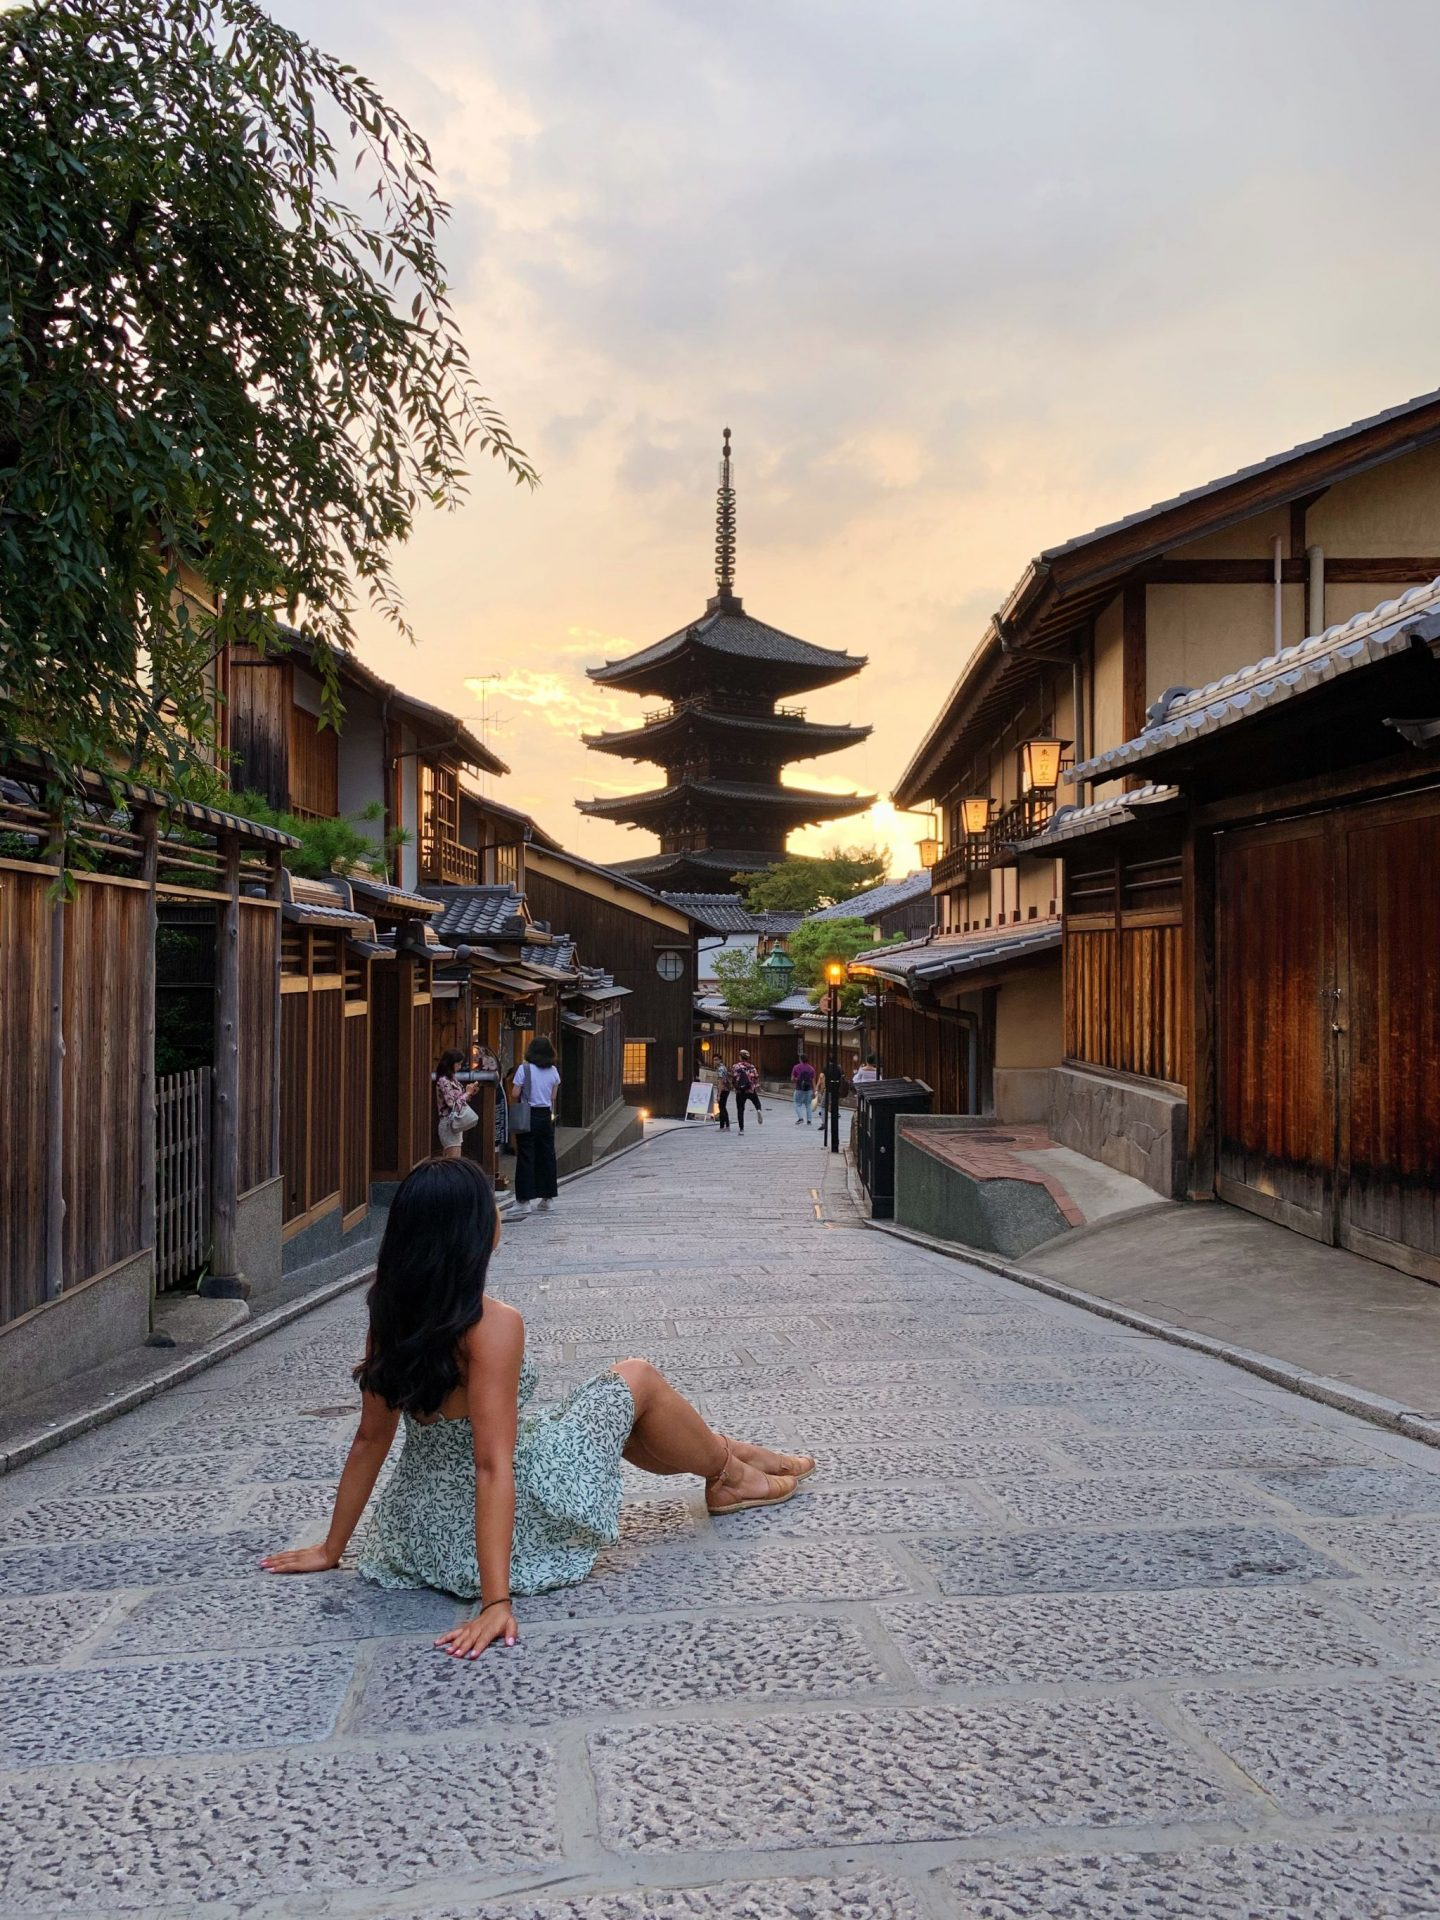 Gion District - kyoto travel guide - Kyoto Japan